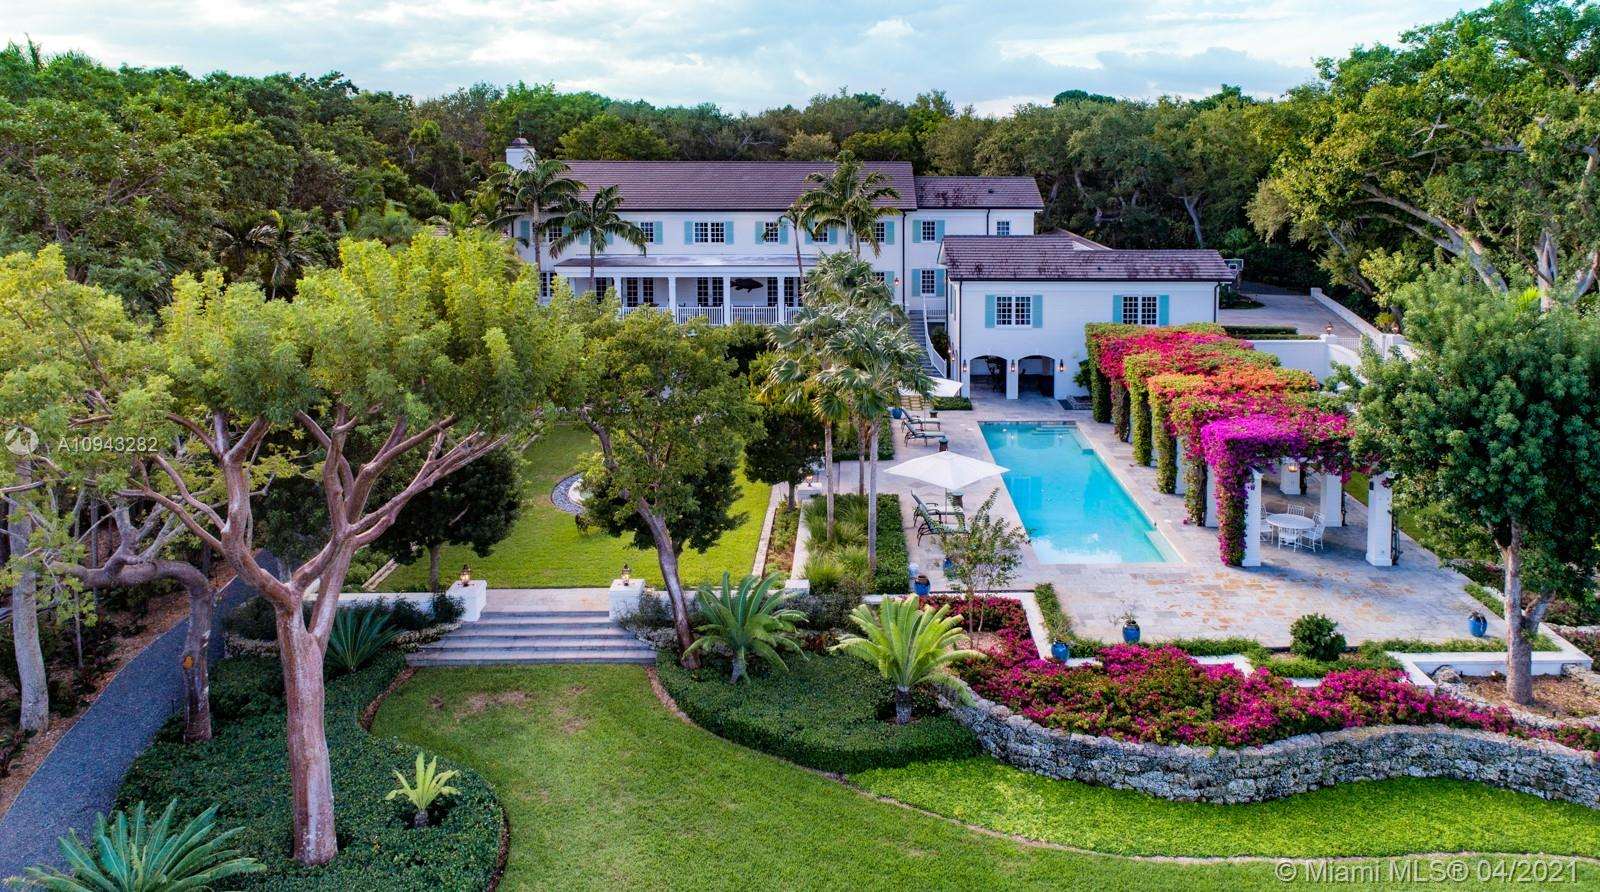 This custom-built 16,212 Sq.Ft. residence embodies the essence of luxury, in the highly-renowned gated waterfront community of Gables Estates. Captivating with understated elegance, the beautifully designed 7 BR, 8.5 BA estate is situated on over 4 acres, and has 205 feet of waterfront on a deep-water turning basin with direct access and no bridges to Biscayne Bay. The home features elegant interiors, spacious living areas, gourmet kitchen, breakfast area, formal dining room, and home theater, and is surrounded by show-stopping and lushly manicured gardens. The upstairs main suite comes with full water views and a luxurious bathroom. Other amenities include a wine cellar, spa, game room, summer kitchen, tennis court, gorgeous pool, and dock. Truly an exceptional waterfront haven.